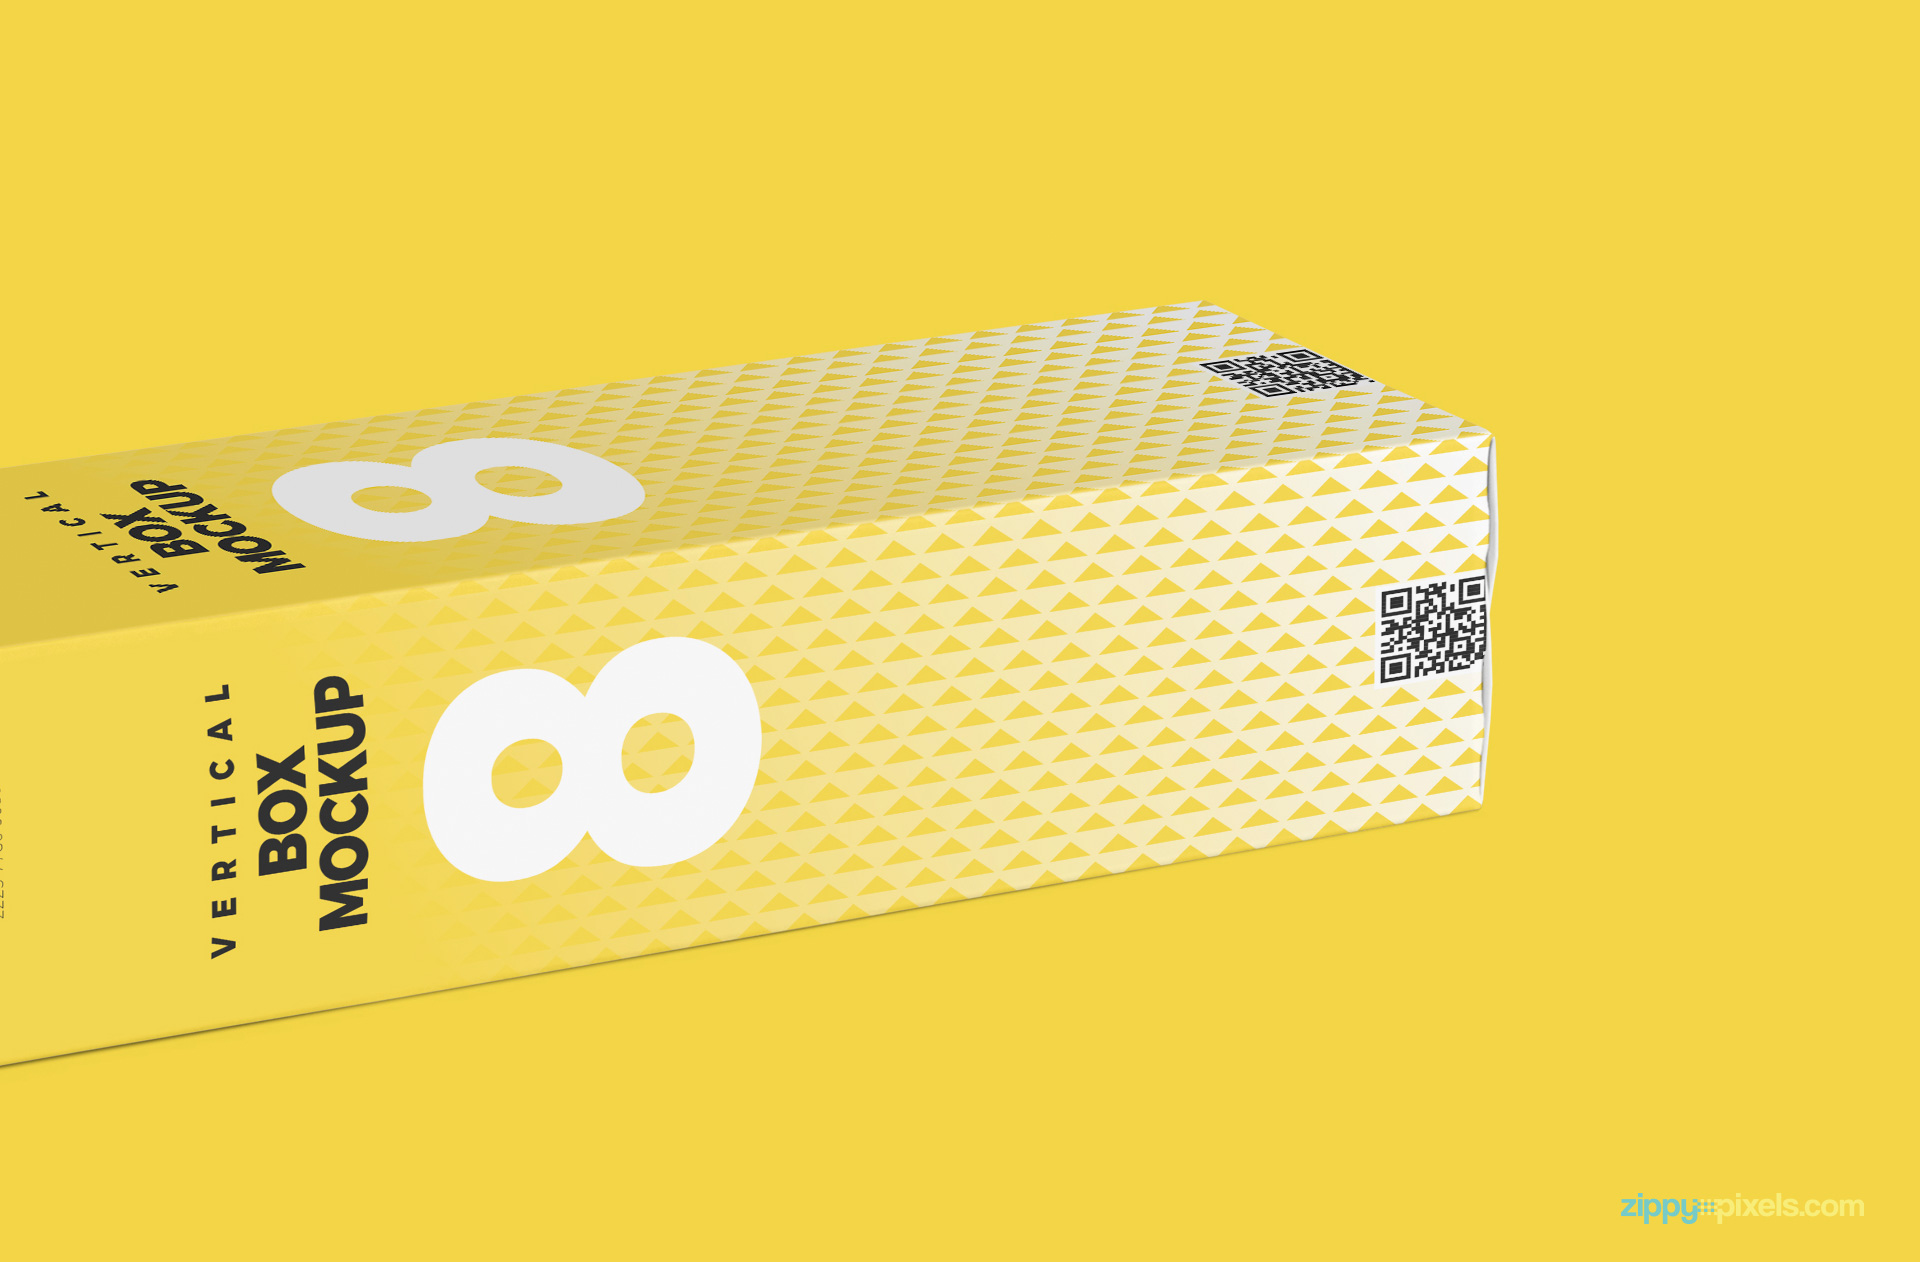 horizontal view of corrugated box mockup psd on yellow surface